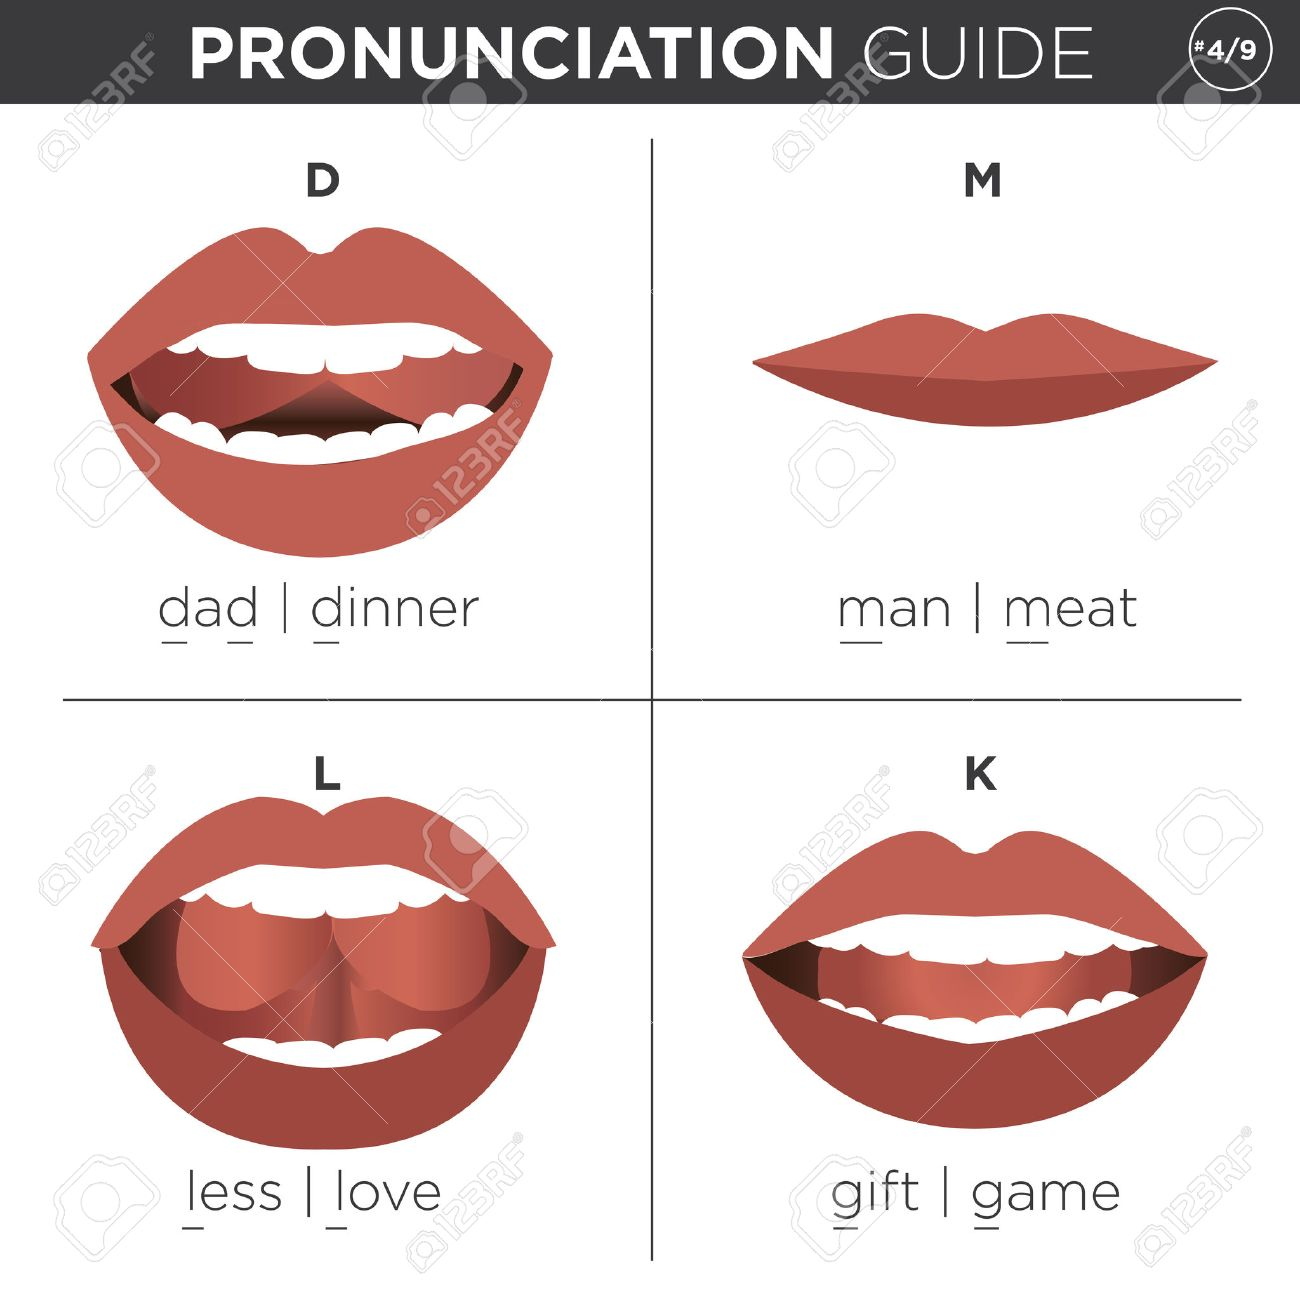 Visual pronunciation guide with mouth showing correct way to